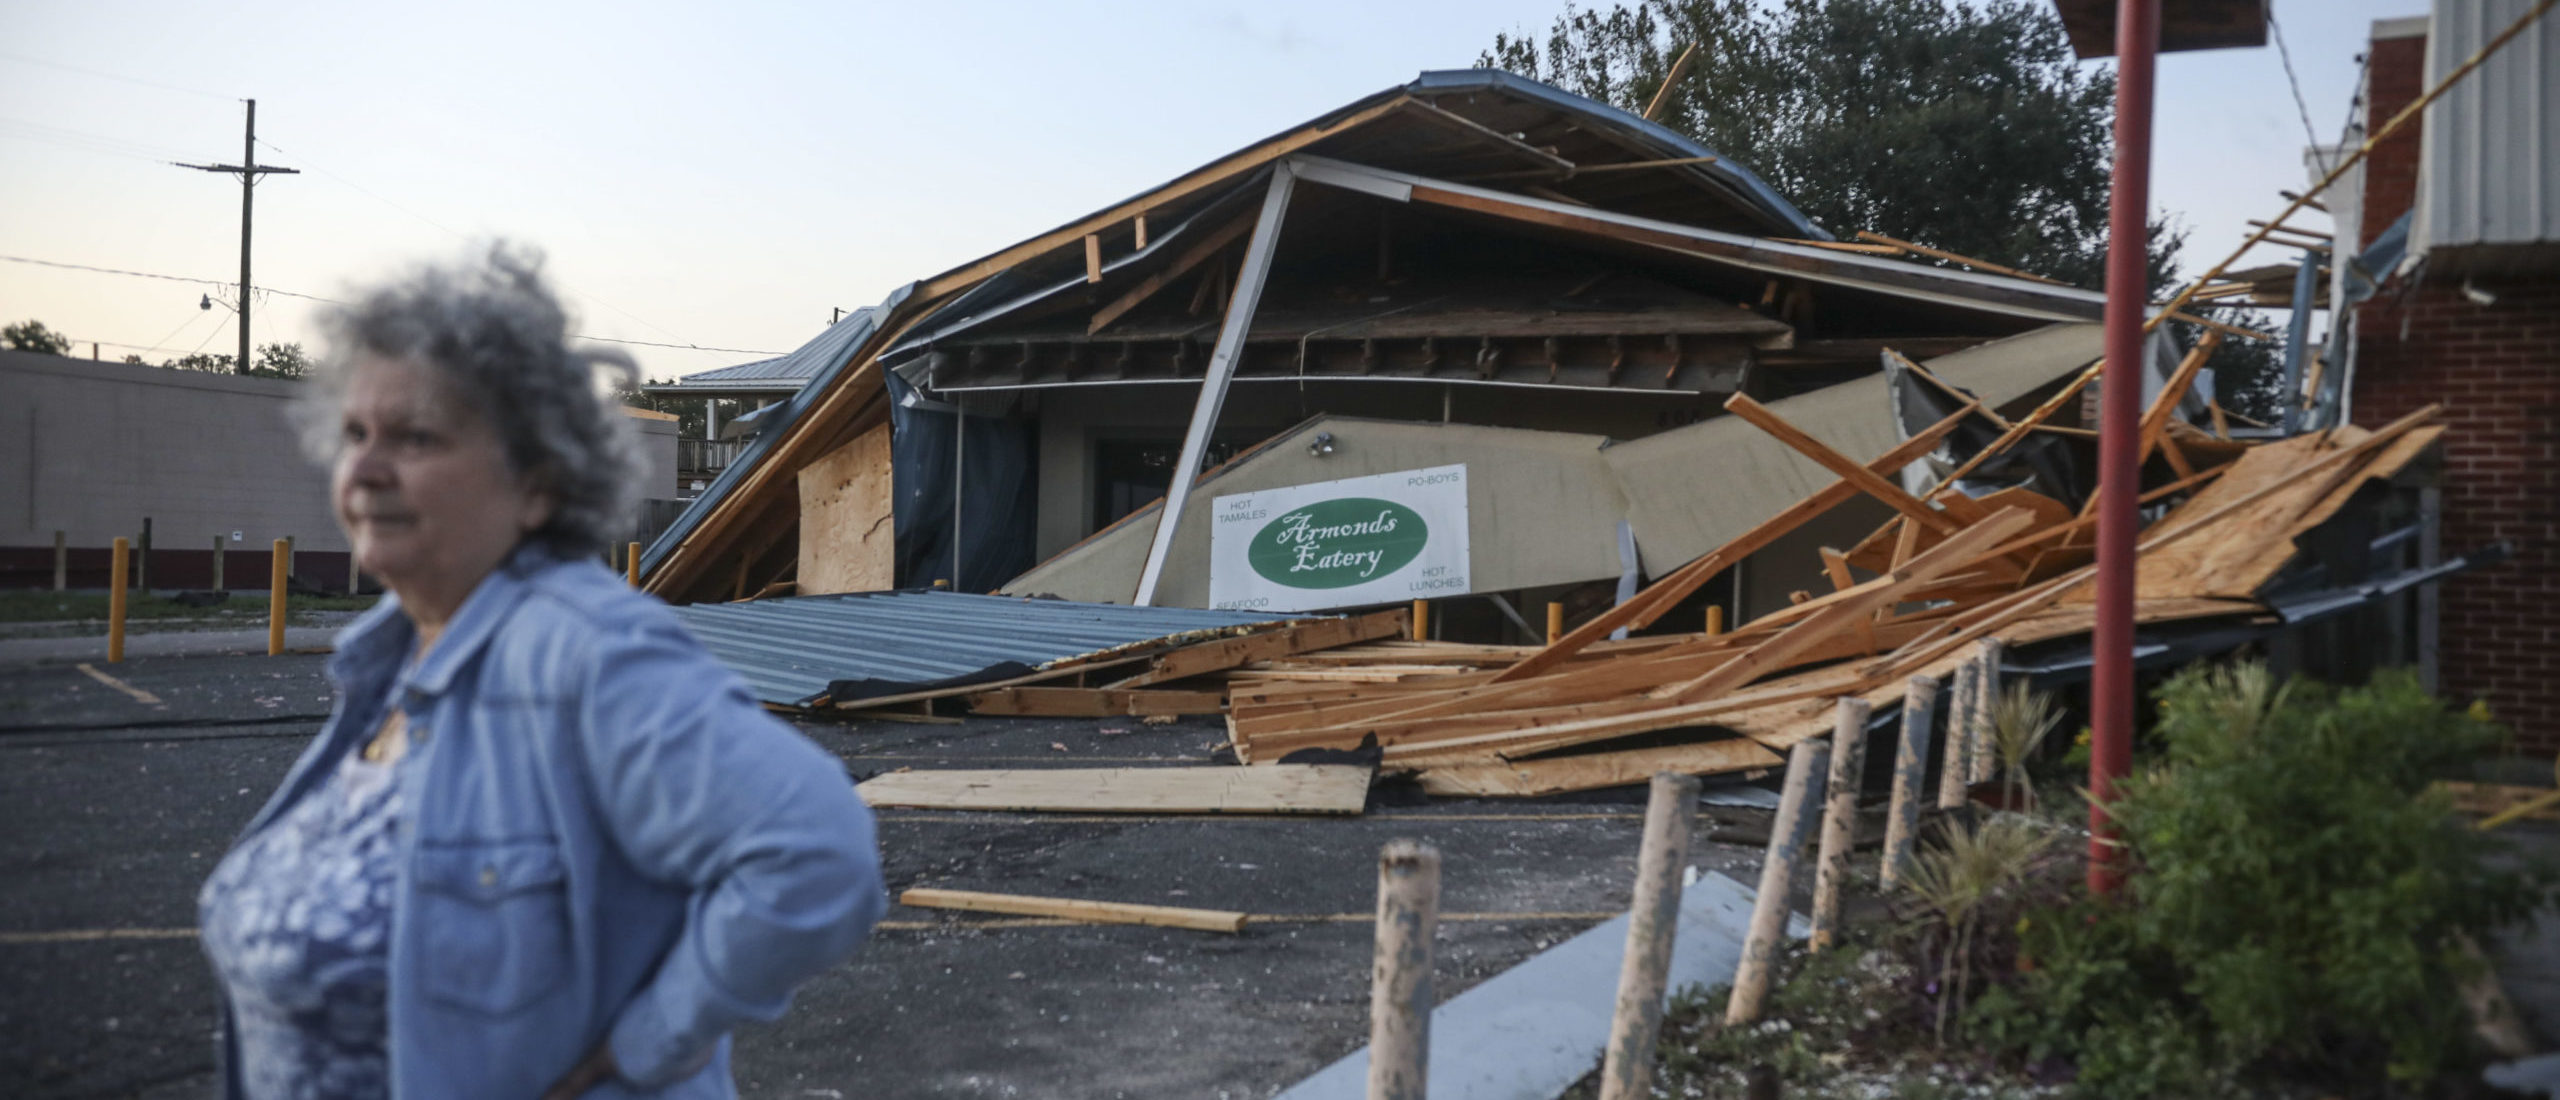 6 Dead, 2 Million Homes, Businesses Without Power After Hurricane Zeta Pummeled The South